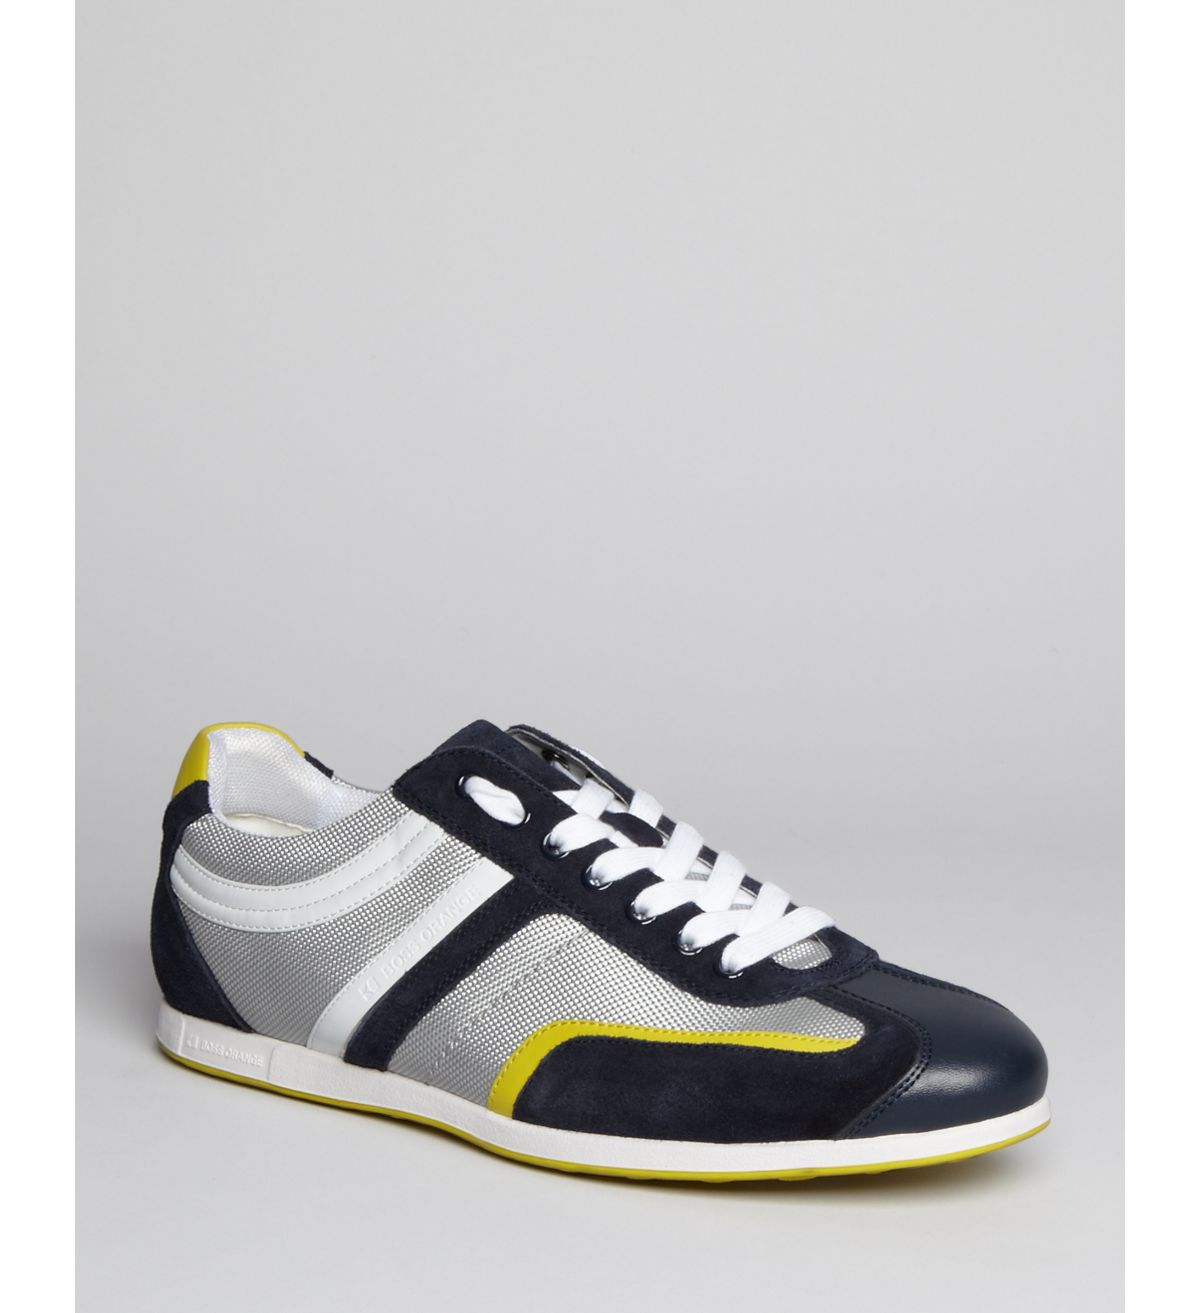 hugo boss boss orange silvans sneakers in for men navy. Black Bedroom Furniture Sets. Home Design Ideas